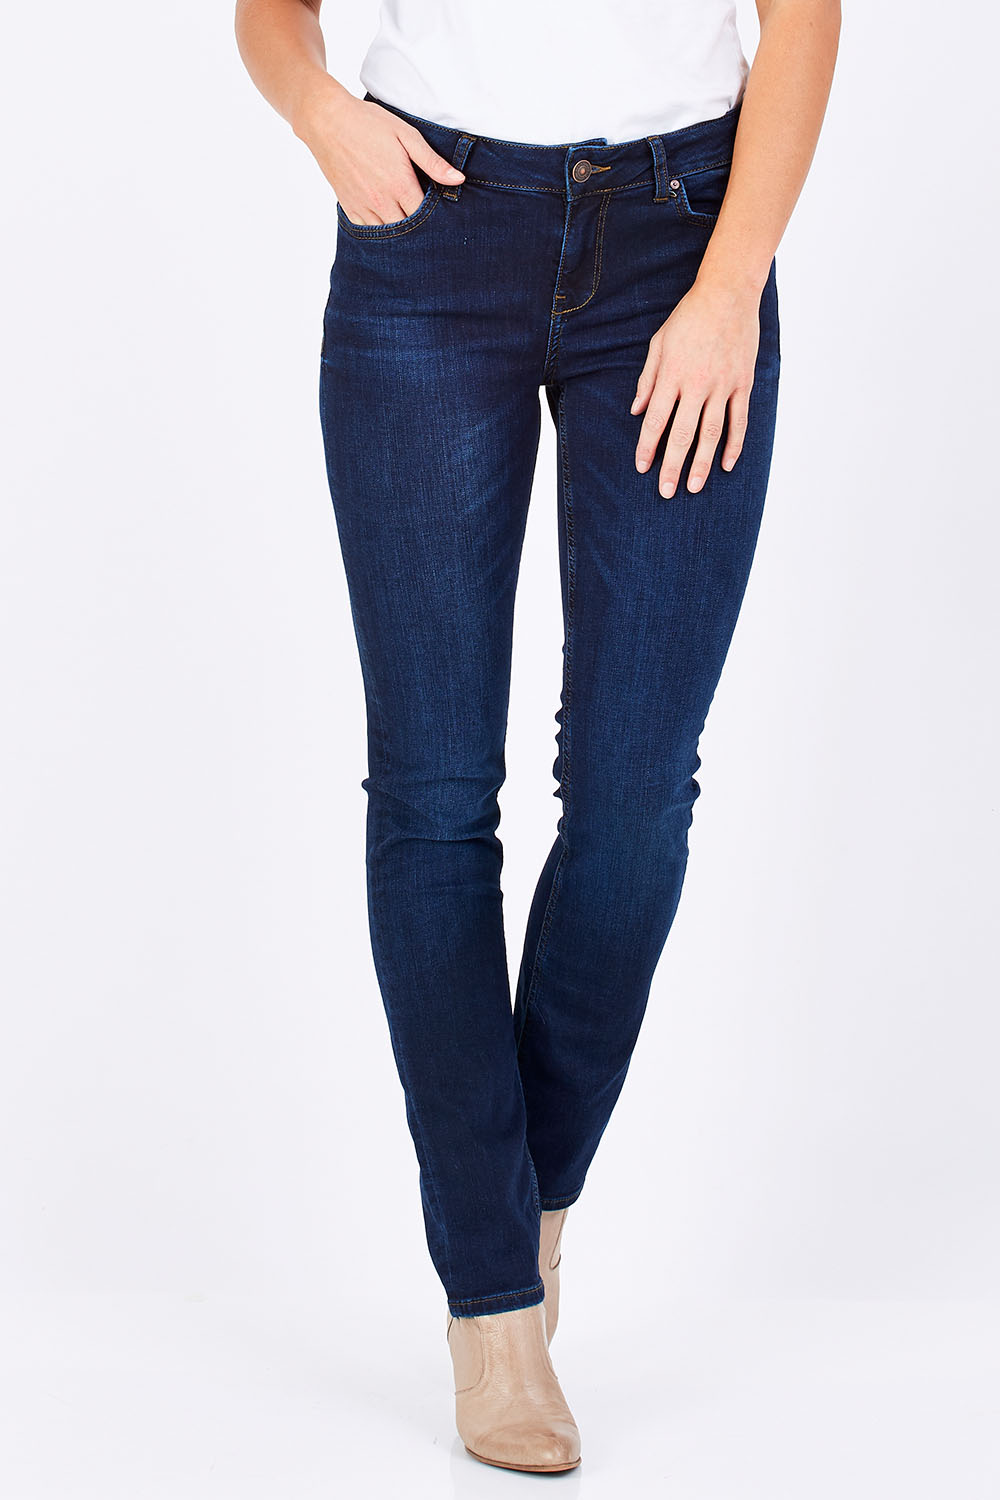 LTB Jeans Aspen Y Jeans Slim Donna